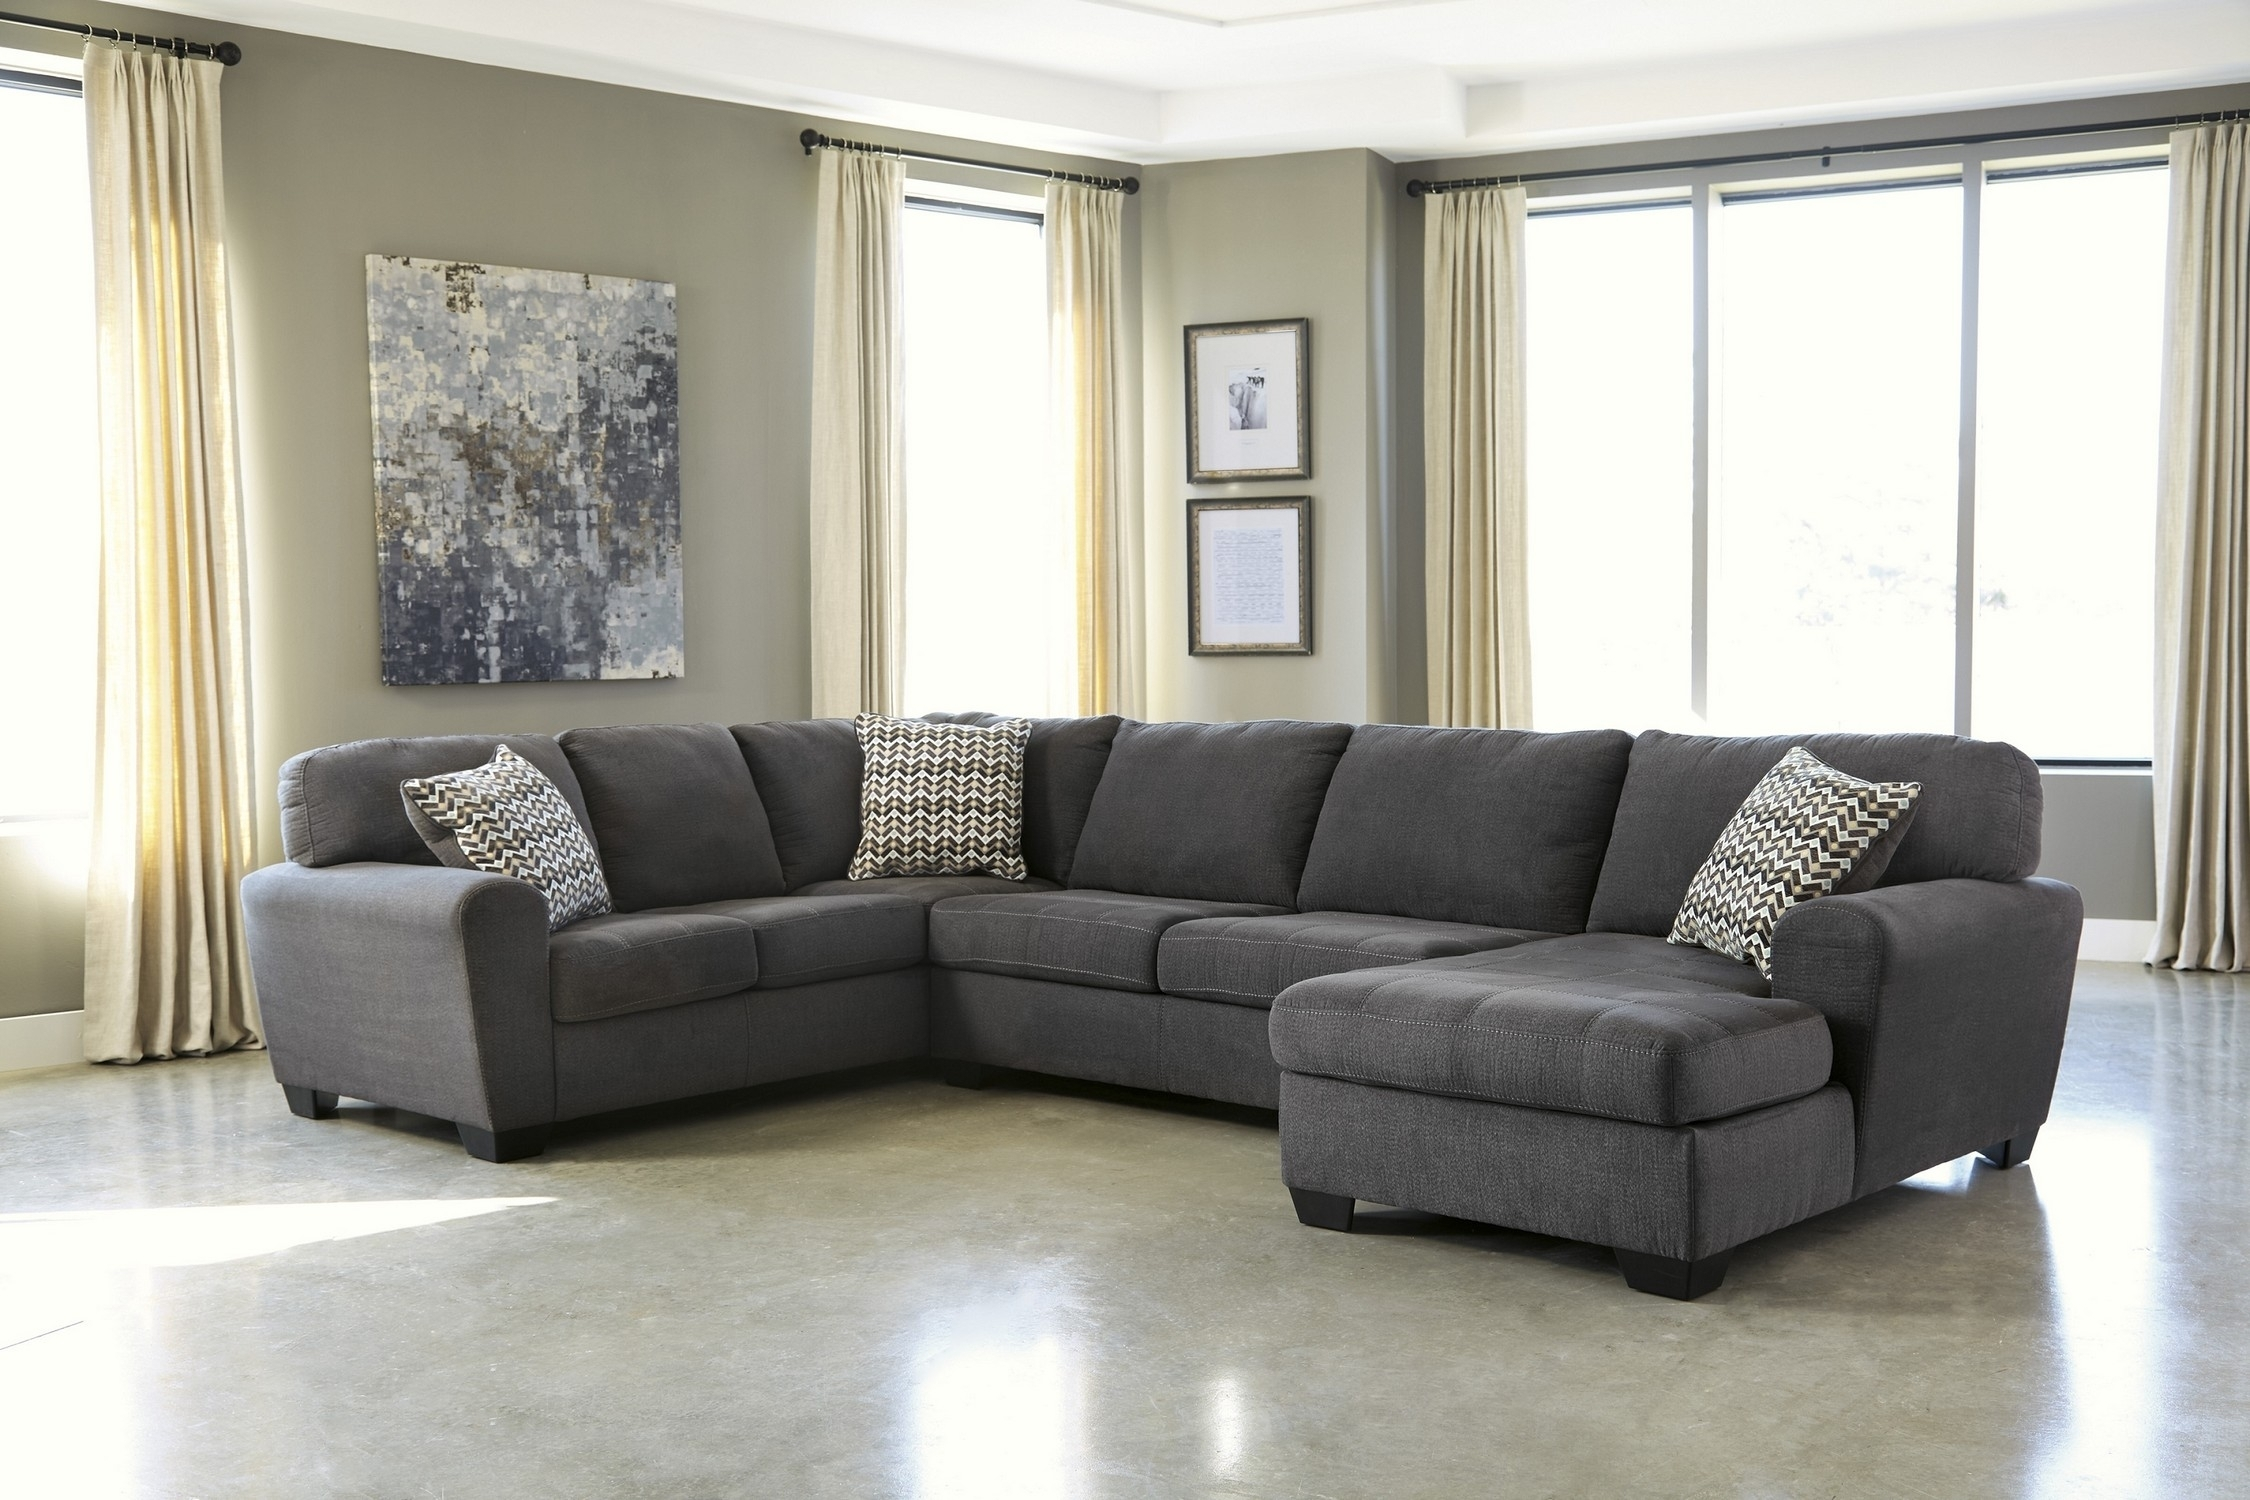 sectional sofas under 1000 00 wedge sofa 10 ideas of 1500